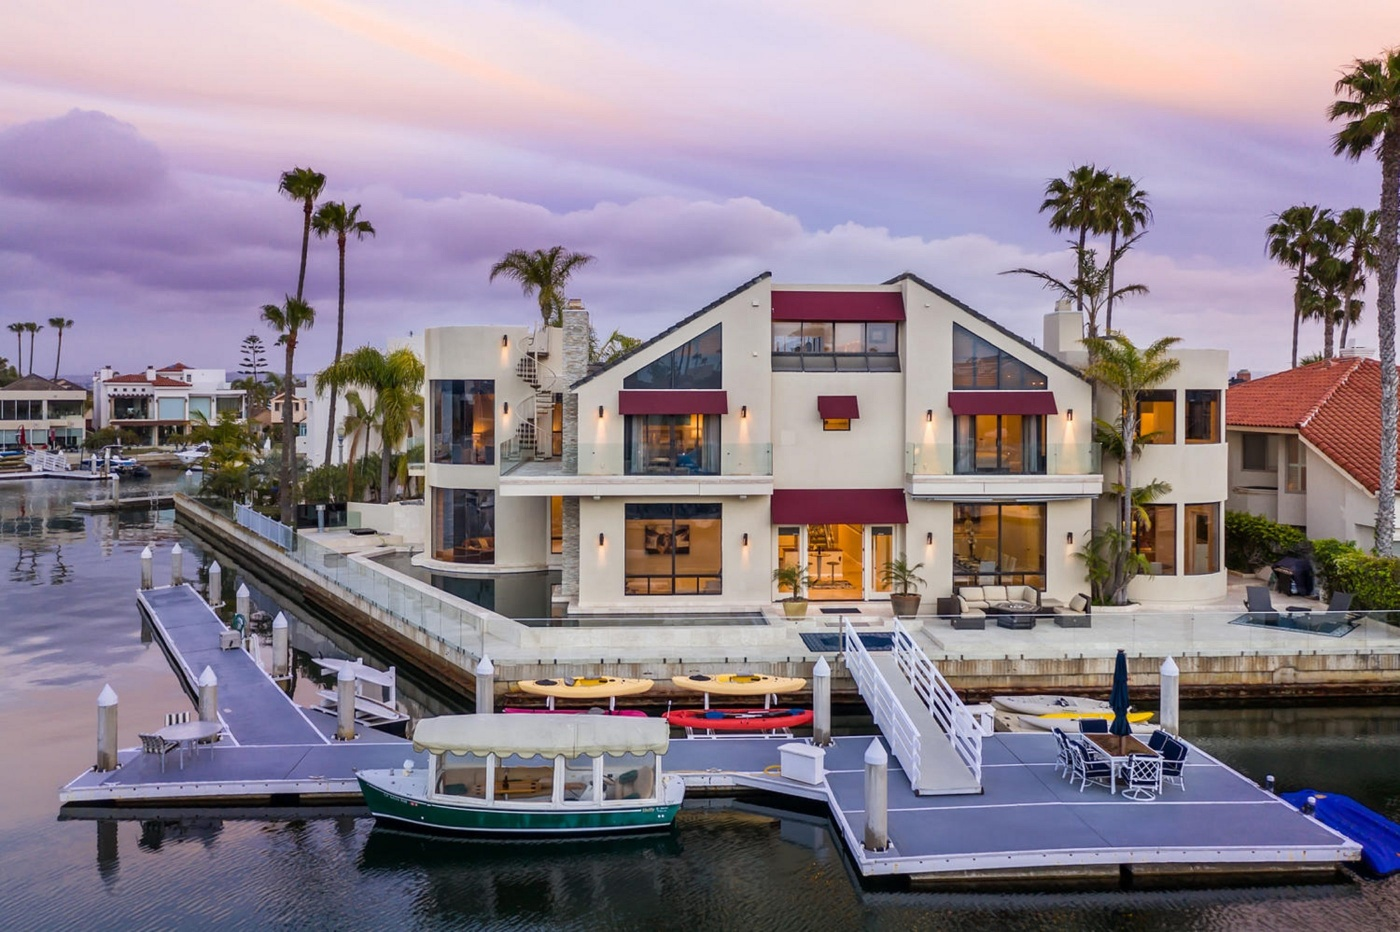 Coronado Bay, CA – 8,200 Sq. Ft. On The Bay Fractional